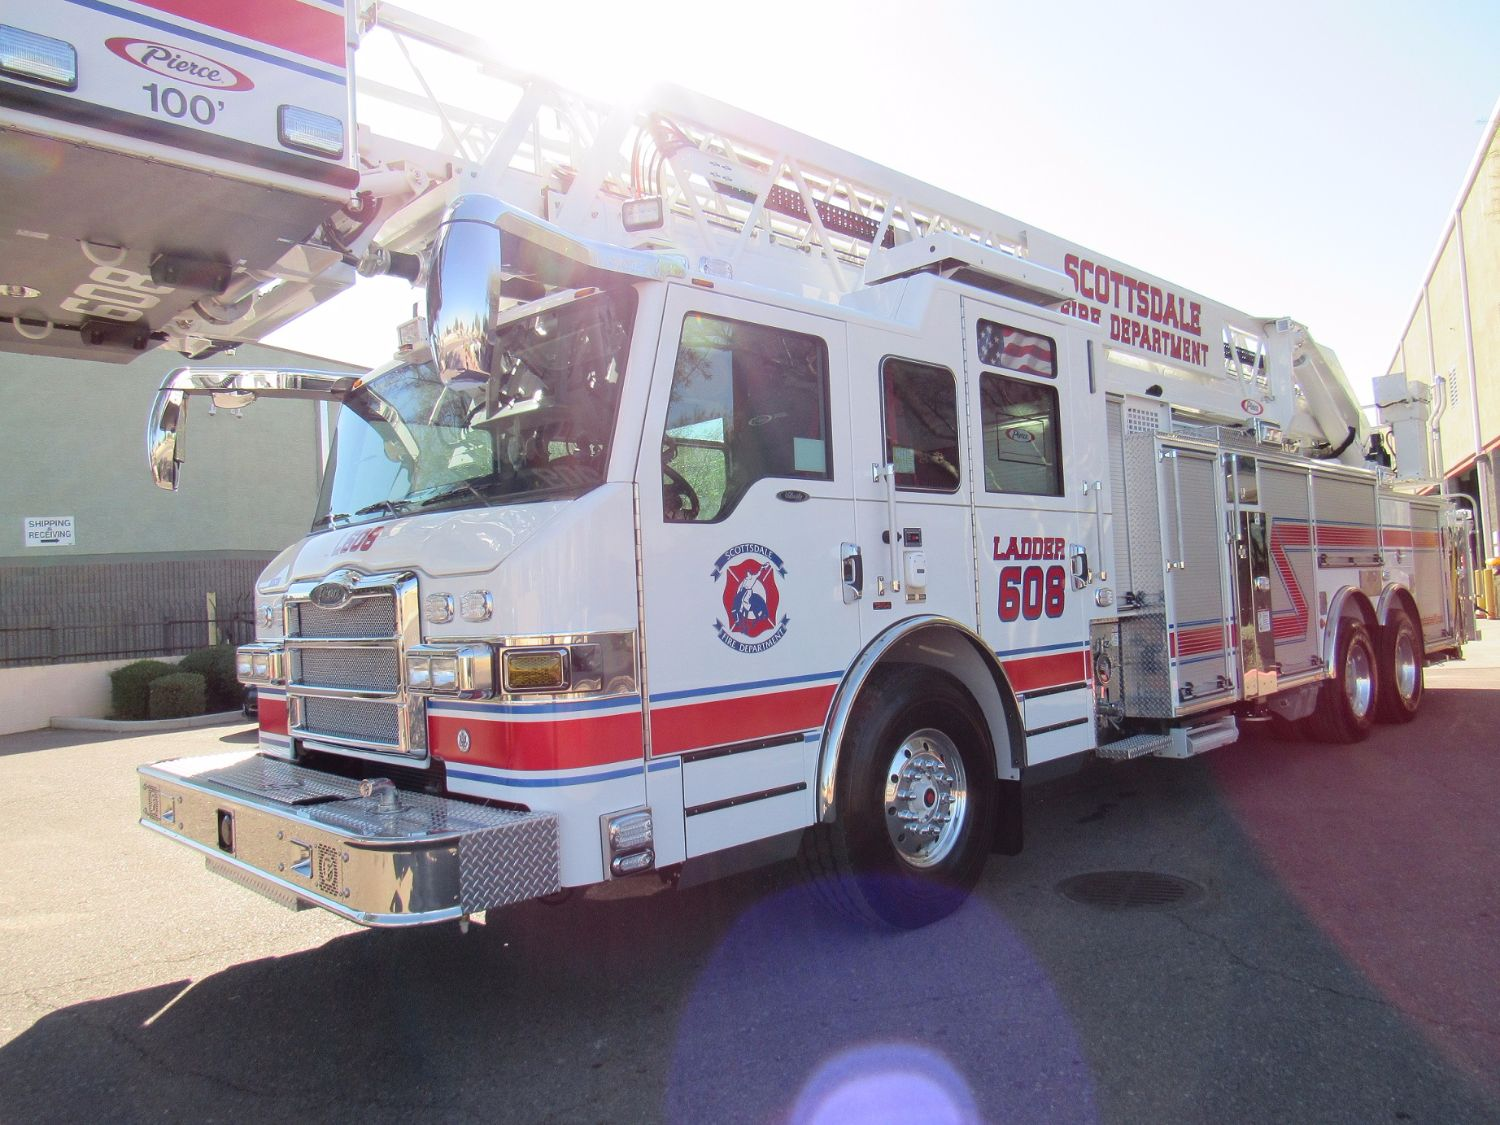 City of Scottsdale - Fire Station Locations